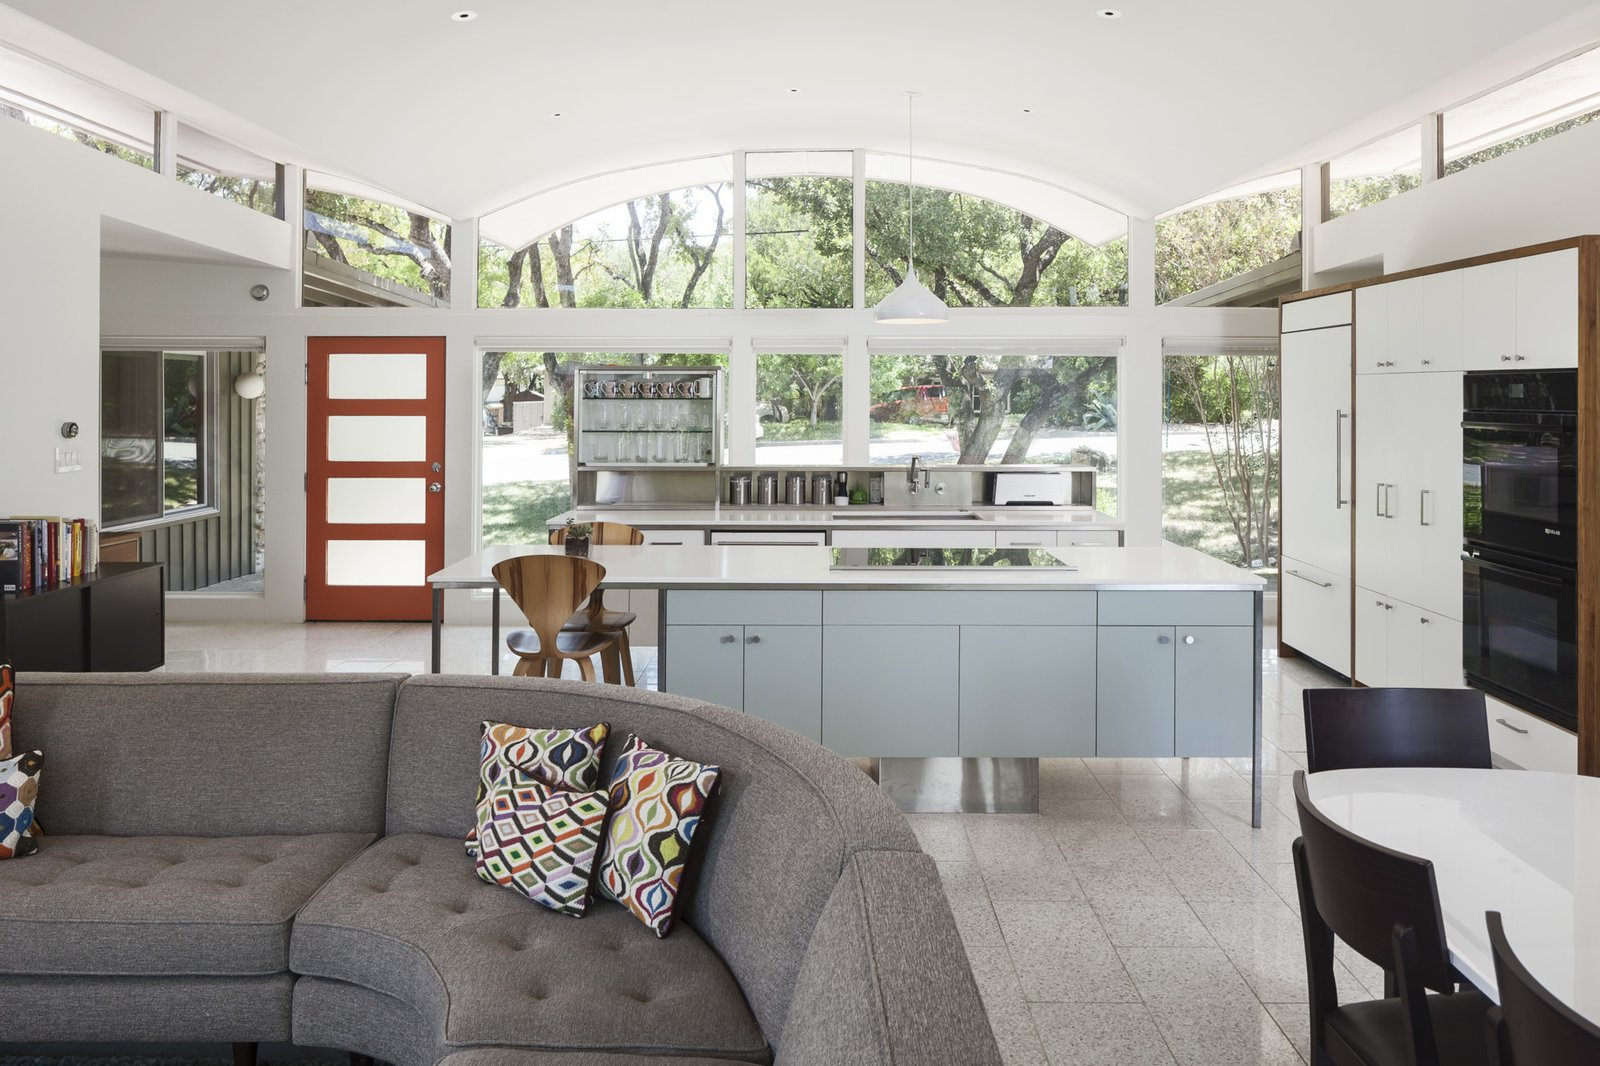 Tagged: Kitchen, Ceramic Tile Floor, White Cabinet, and Laminate Cabinet.  Butter Fly House : A. D. Stenger by Creede Fitch